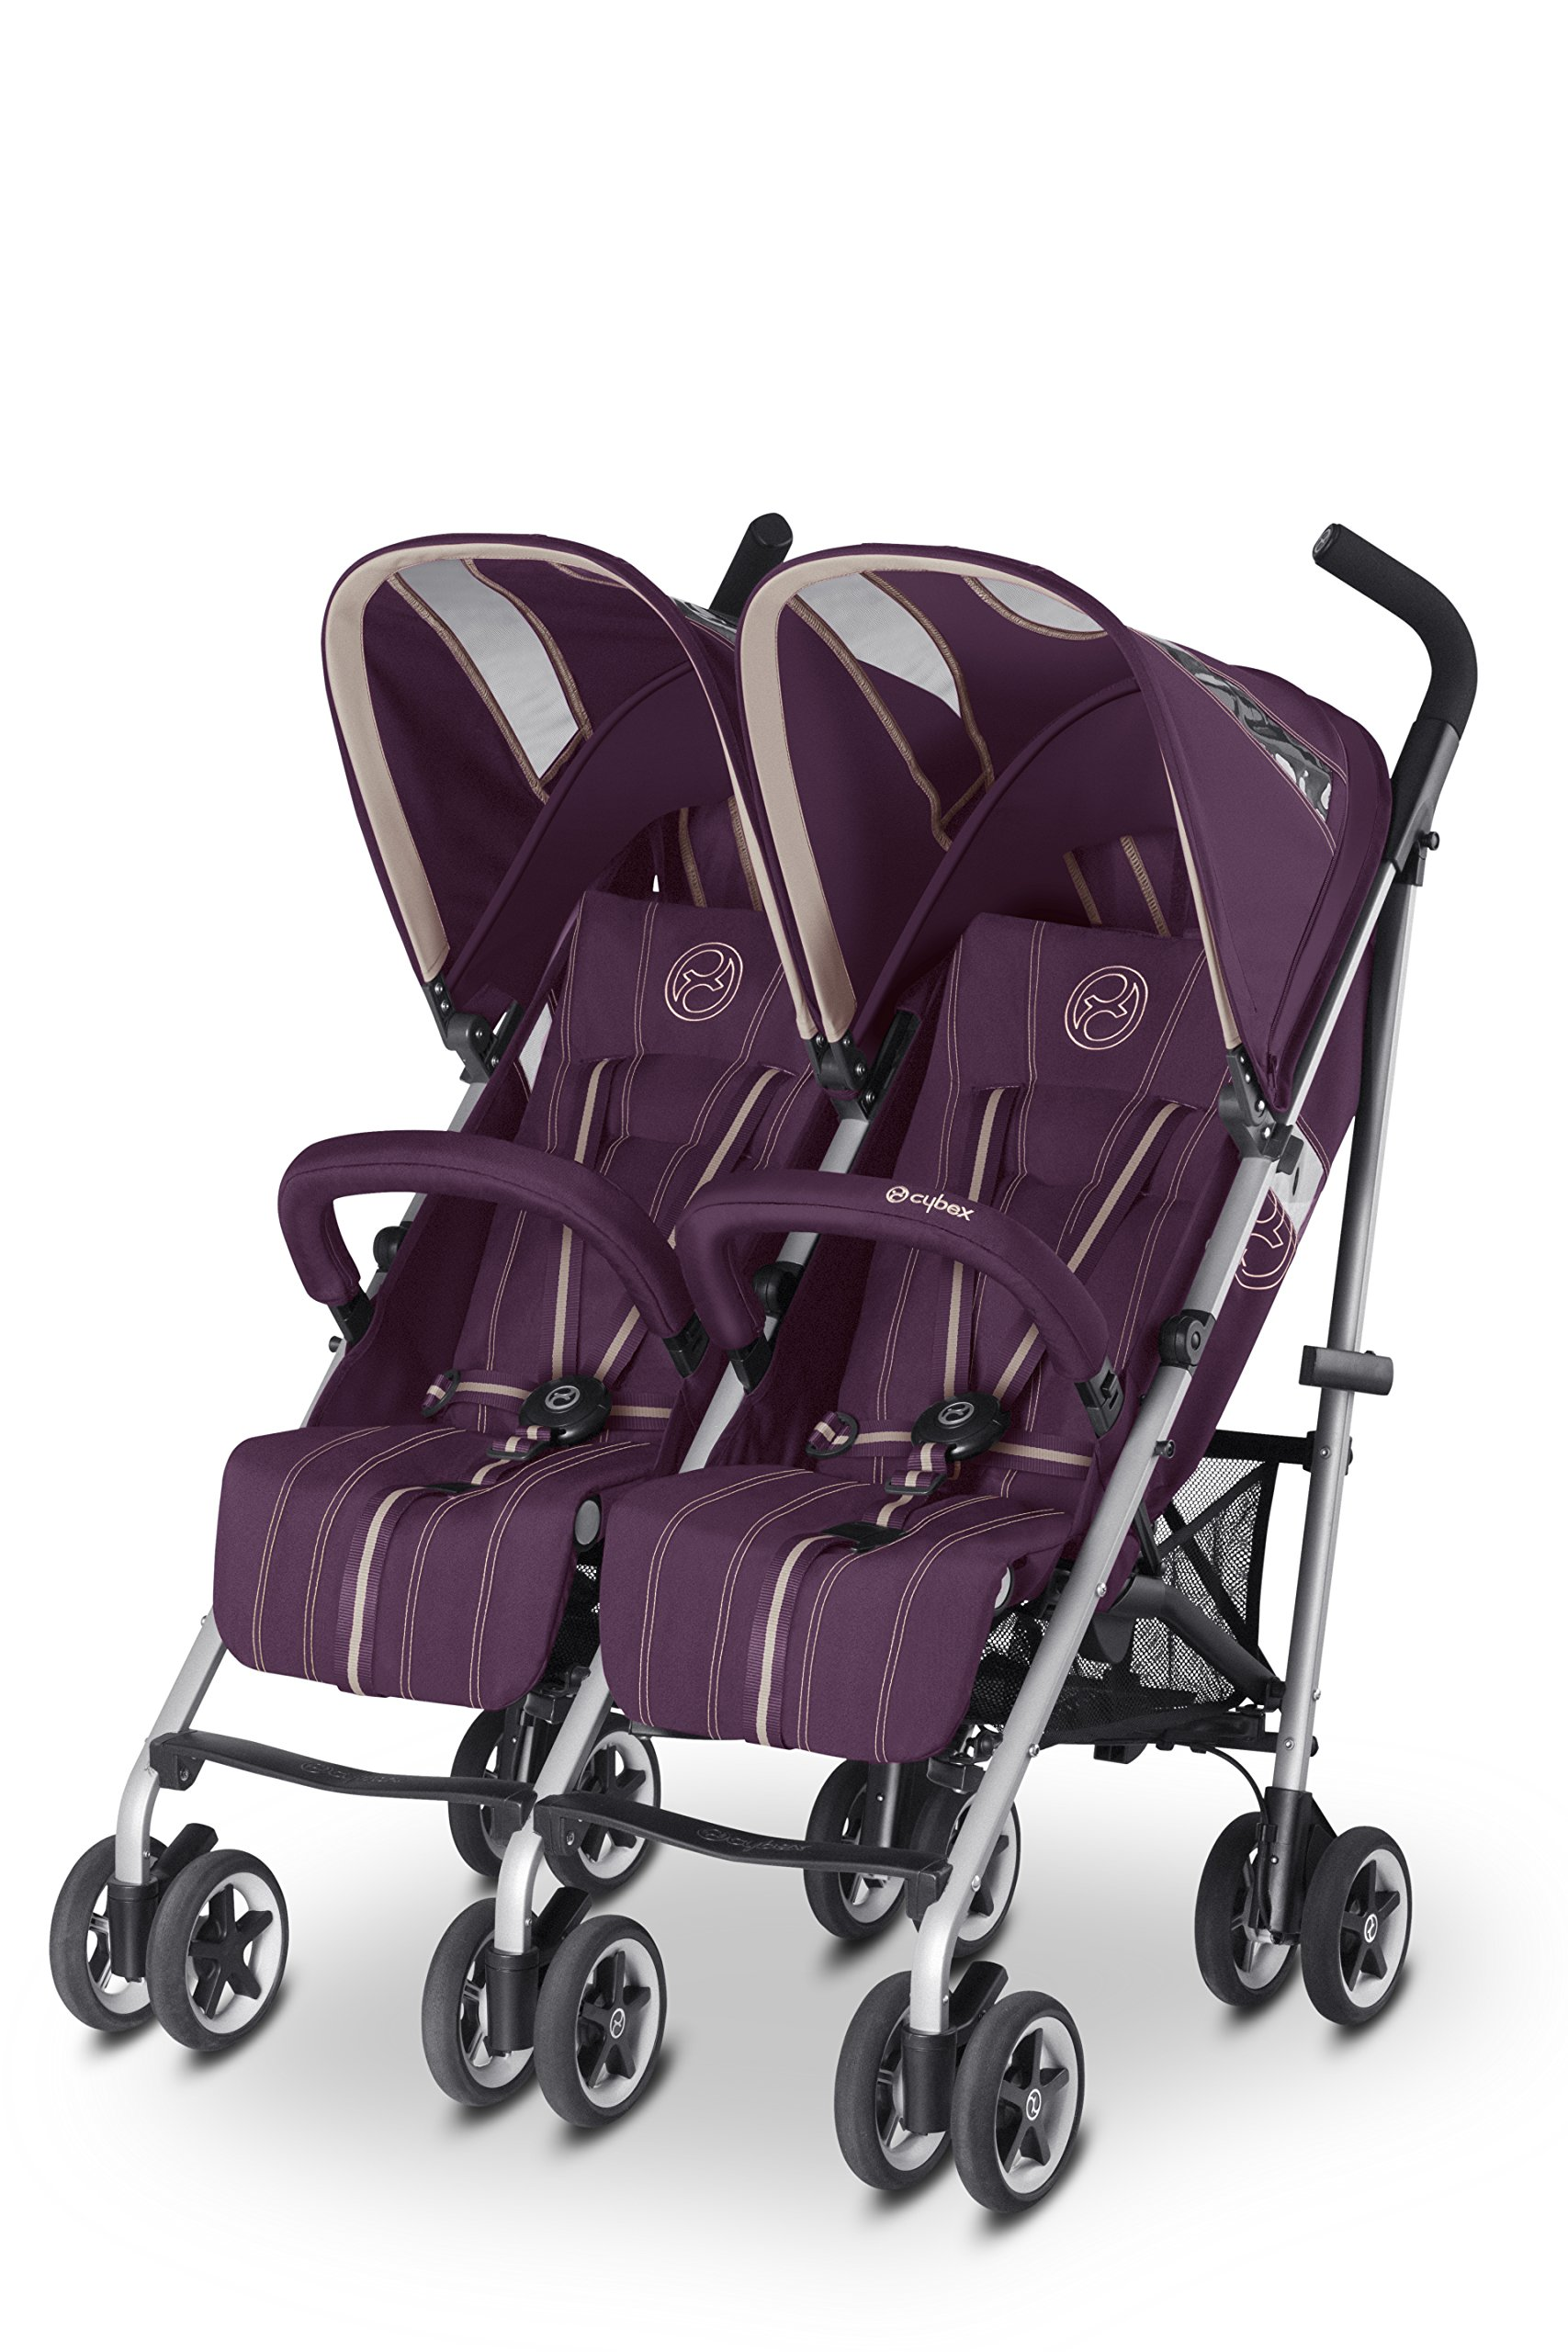 CYBEX Twinyx Princess Pushchairs (Pink)  From birth up to 30 kg Central one-pull harness system XXL sun canopy with UVP50+ 1